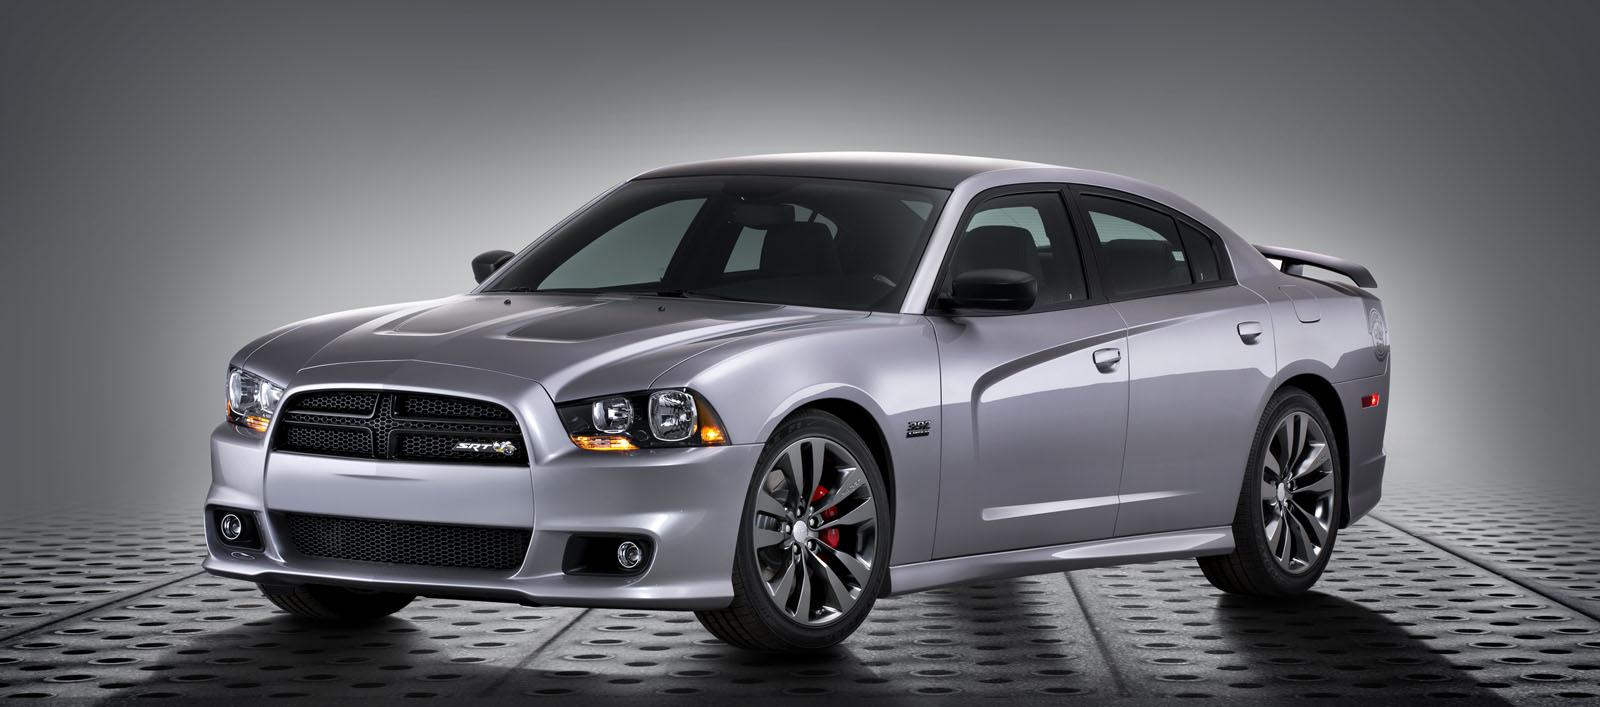 2014 Dodge Charger Commercial Poster Autoevolution